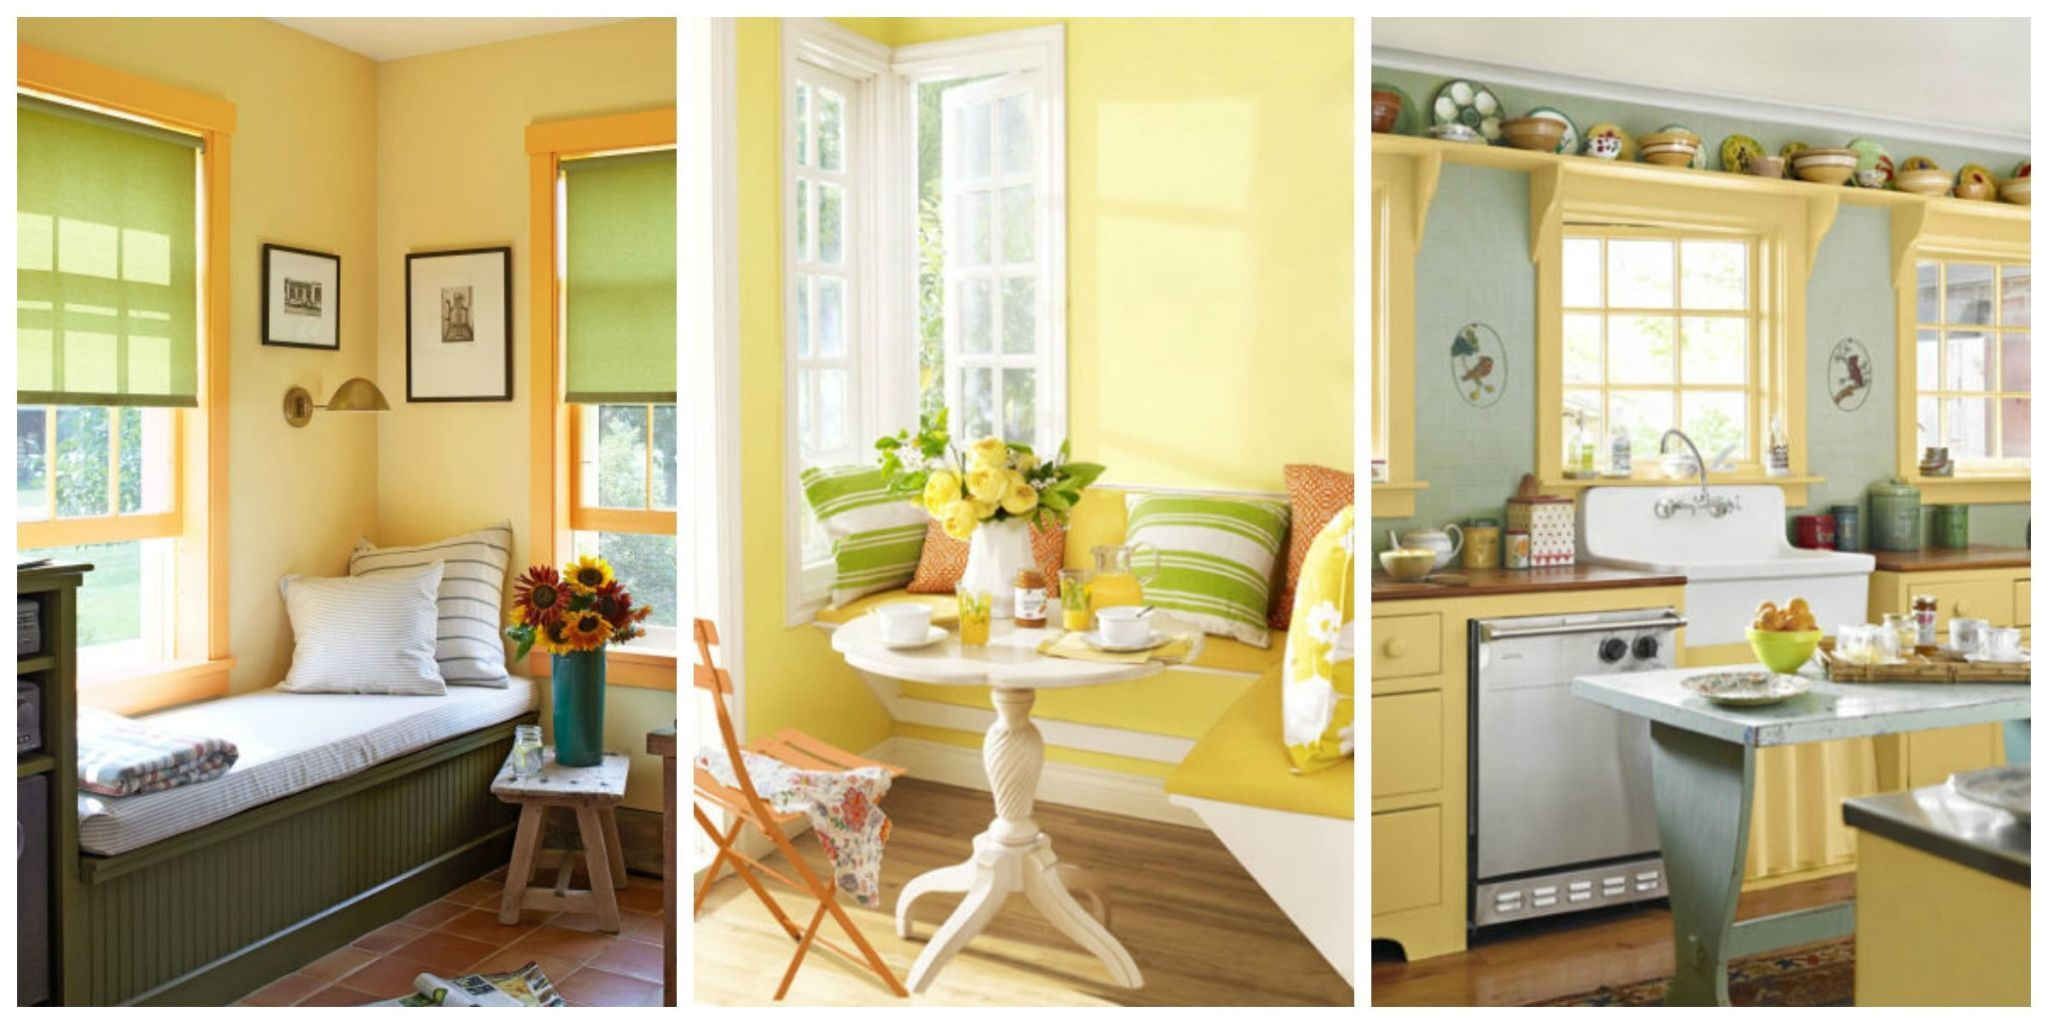 Whether A Swath Of Canary Or A Hint Of Golden, Bring The Sunshine Inside  With Yellow Wall Paint, Decor, And Accents.